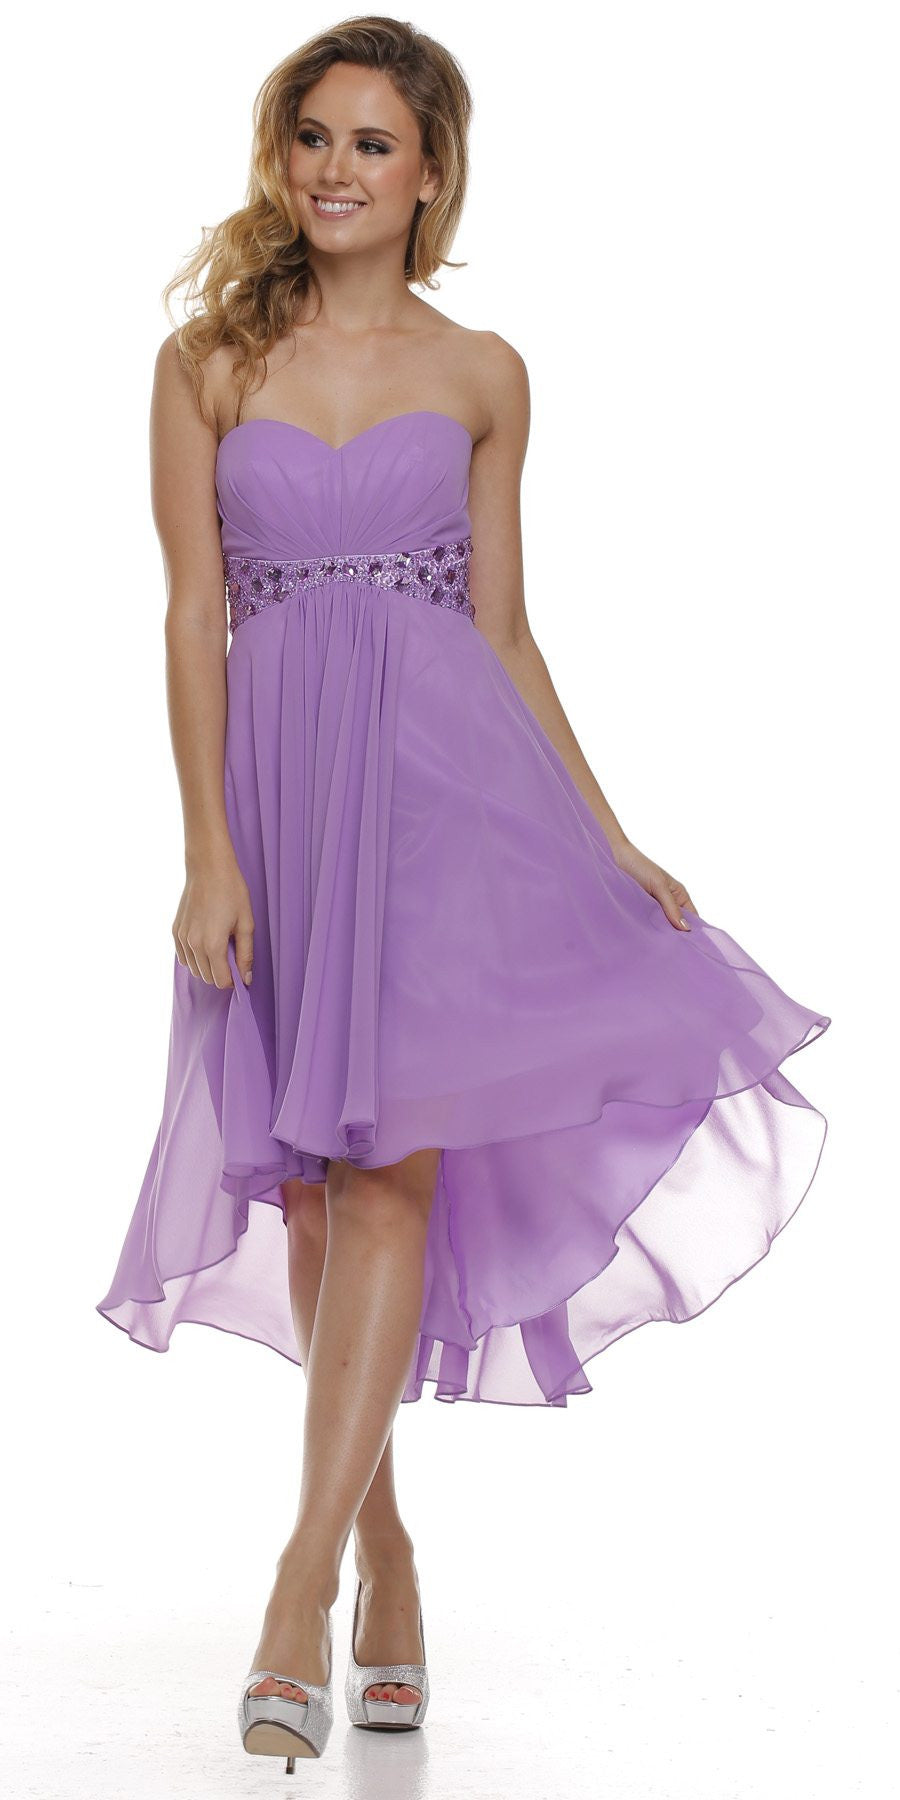 Beaded Empire Waist High Low Strapless Lilac Party Dress